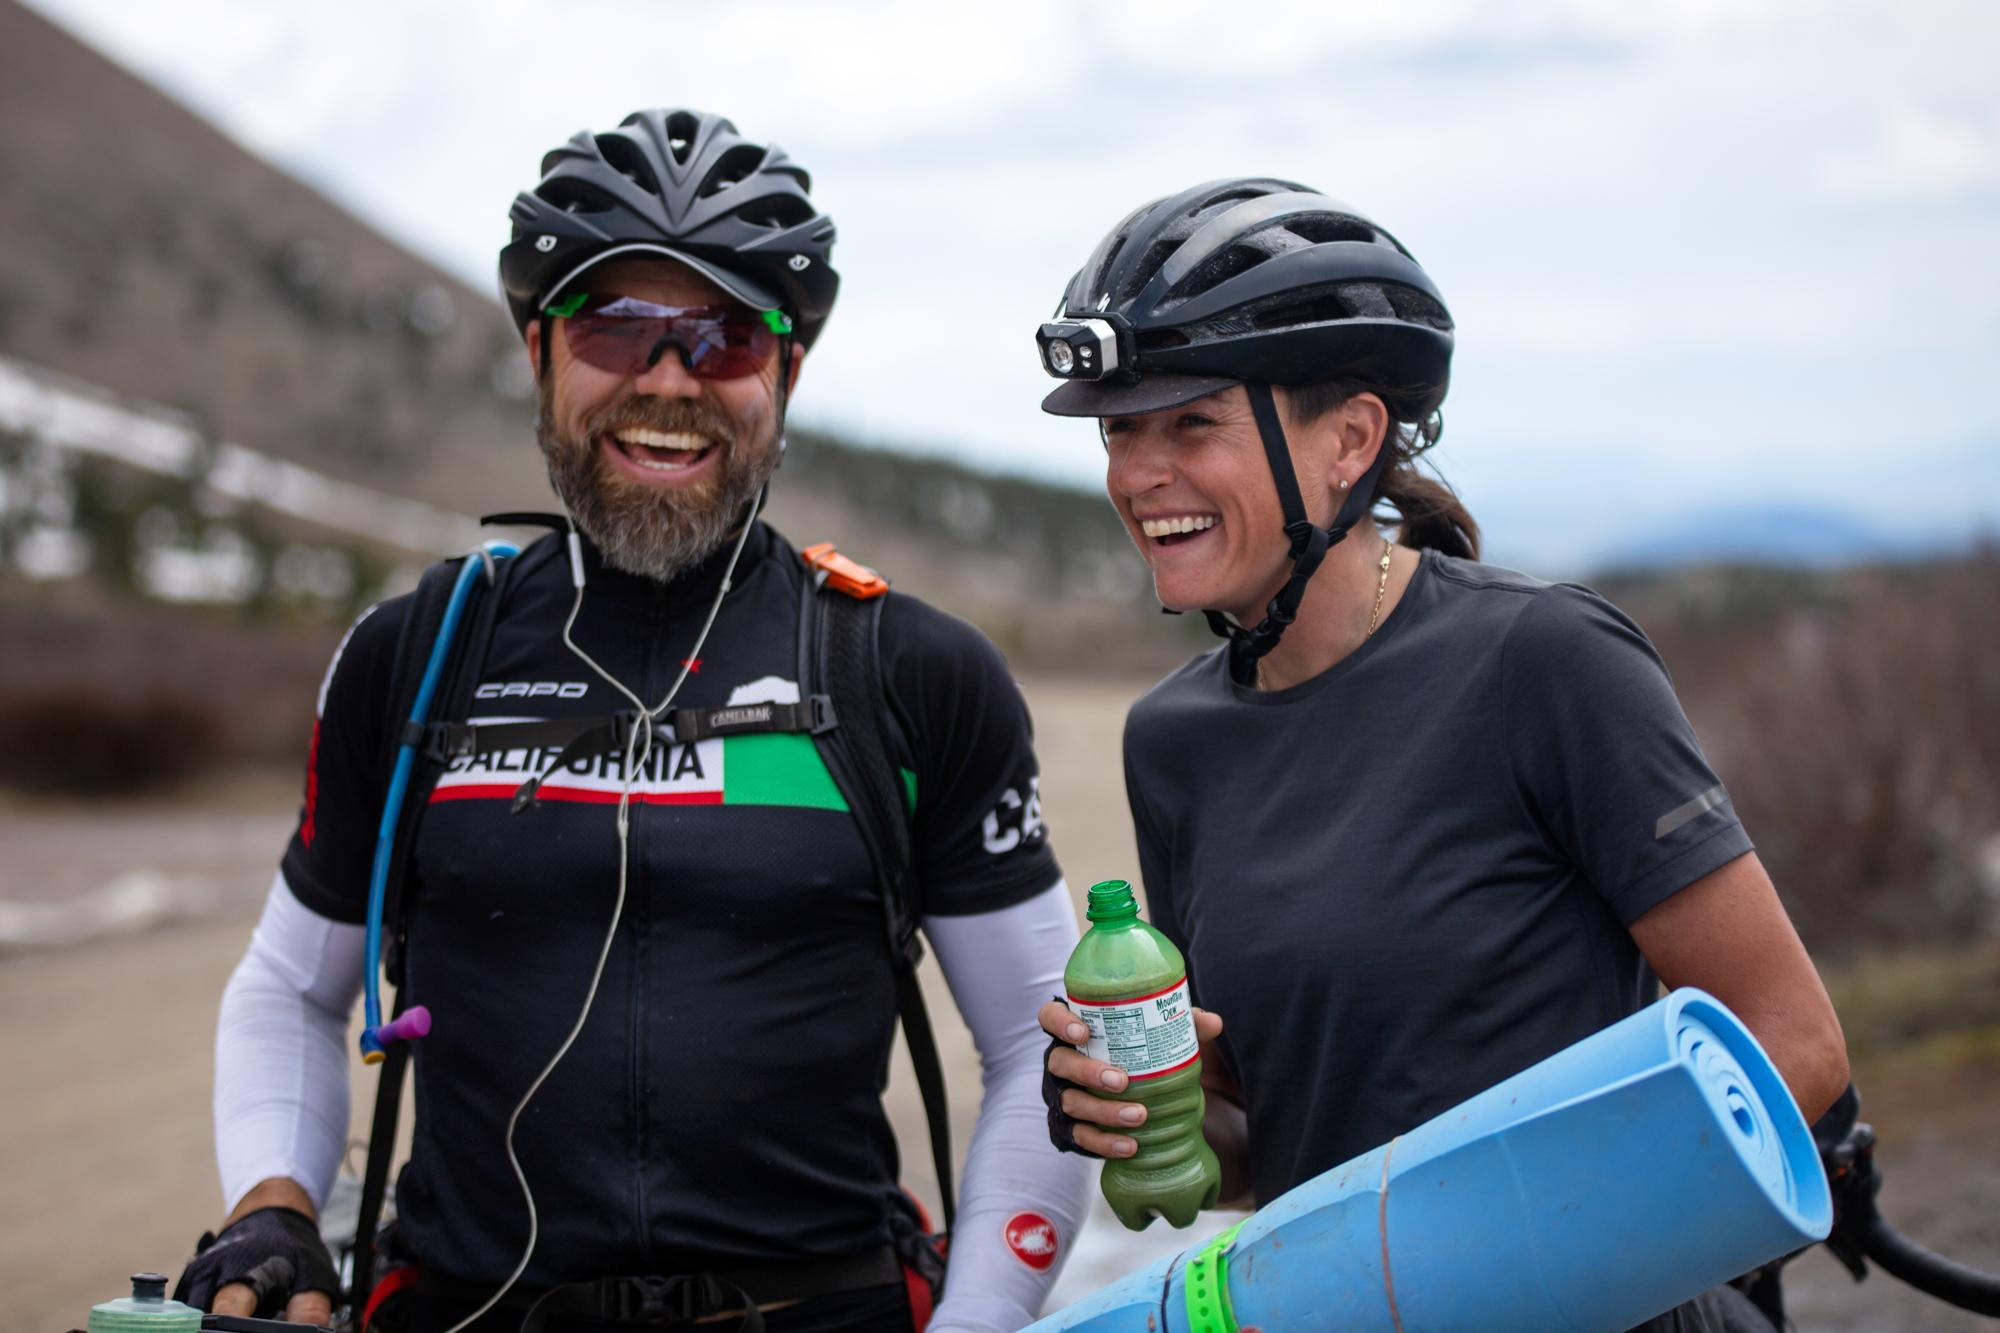 Chatting with a rider touring the route on Boreas Pass. (Rugile Kaladyte)